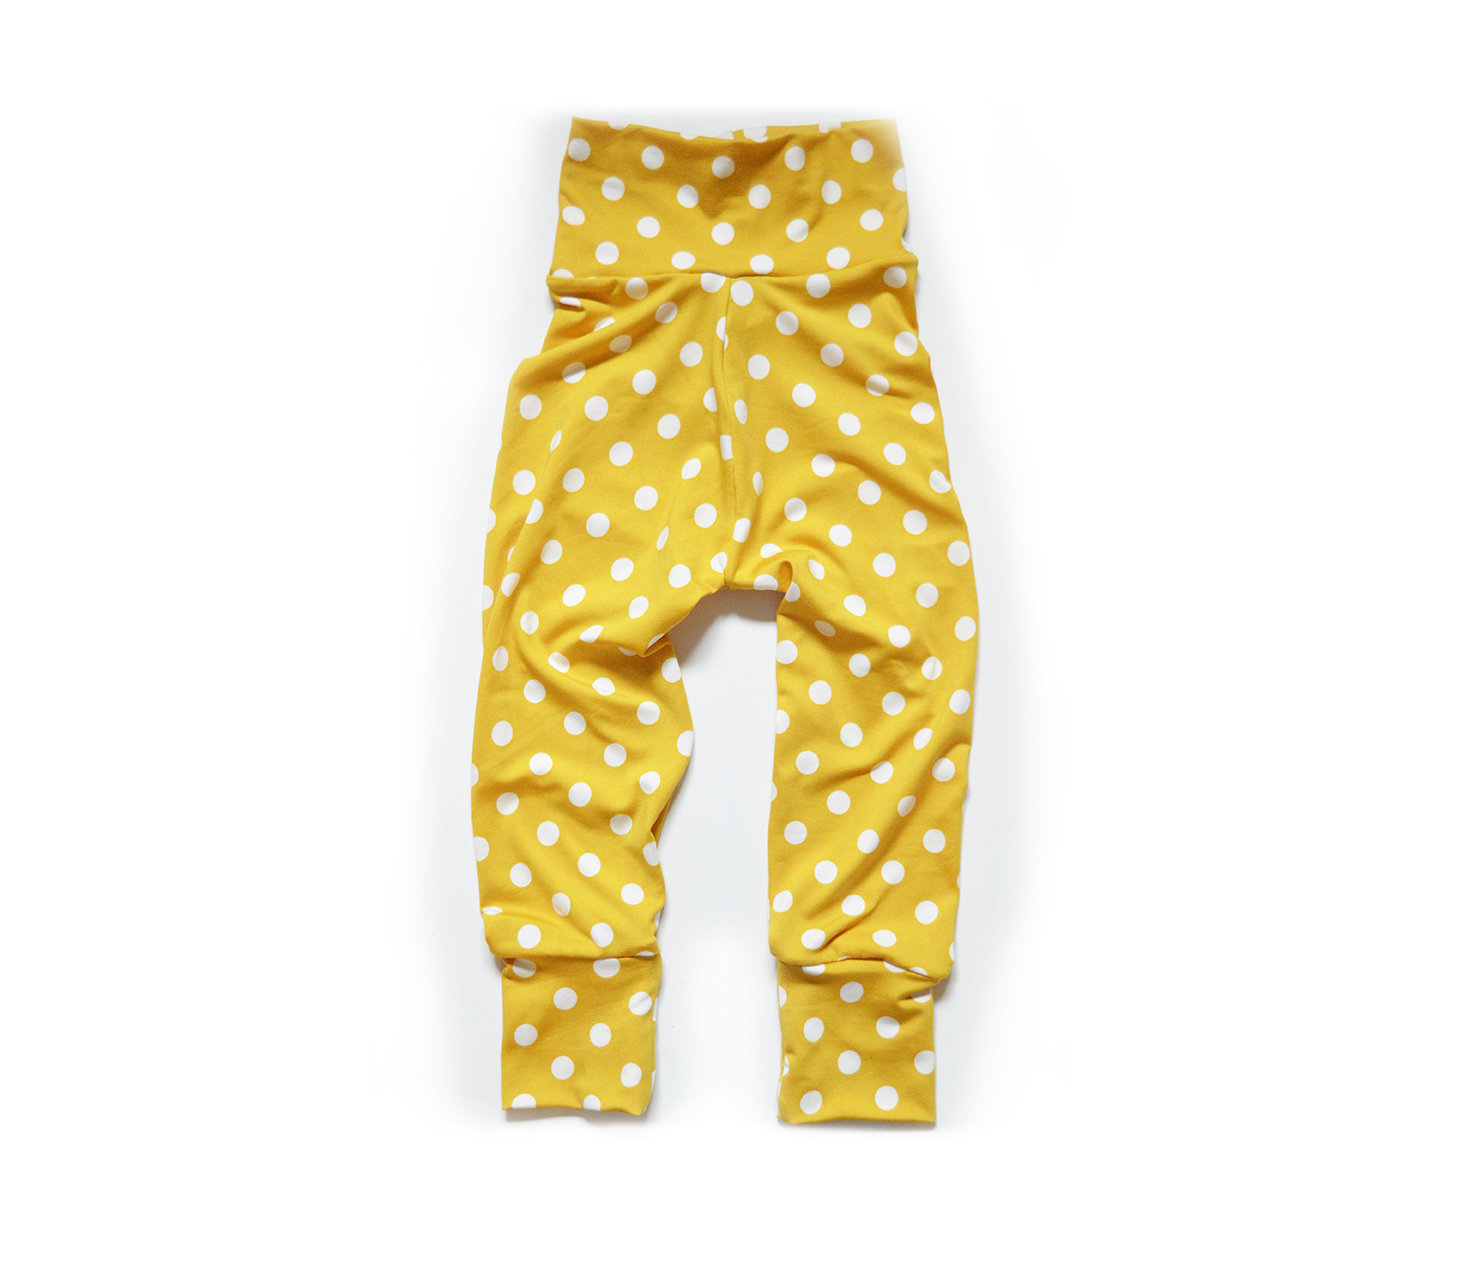 Little Sprout Pants™ Golden Dot - Stretch Fit 00416